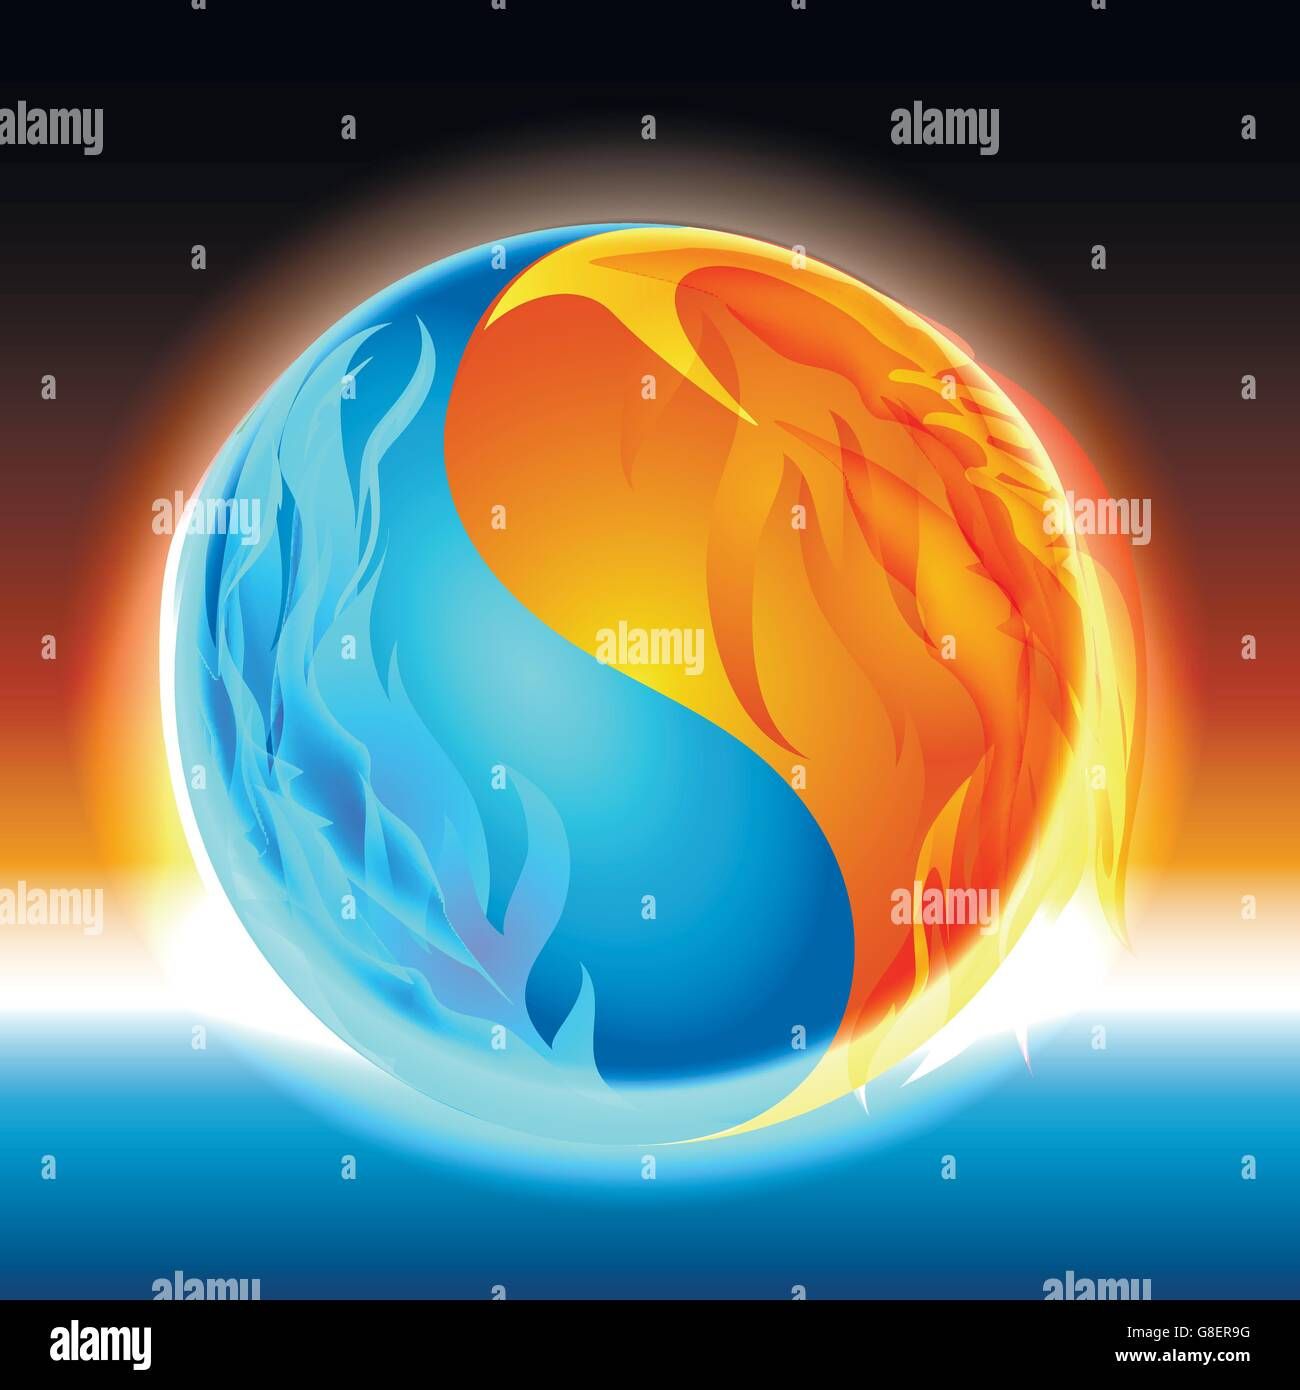 24+ Fire And Ice Yin Yang Pictures